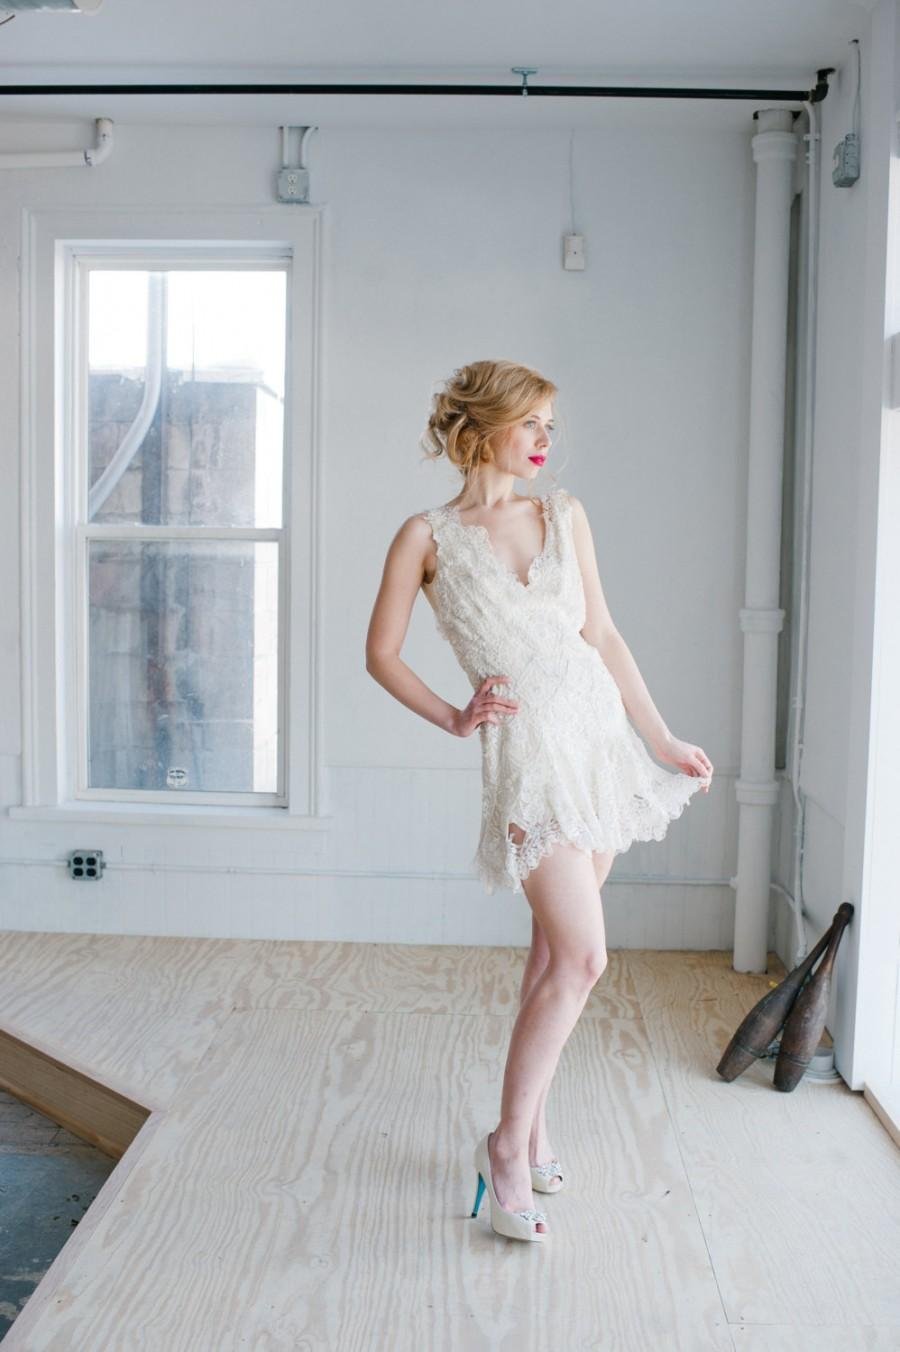 Boda - Odette Beaded Wedding Dress; Handmade Wedding Dress, gorgeous bridal beaded lace mini dress with plunging back